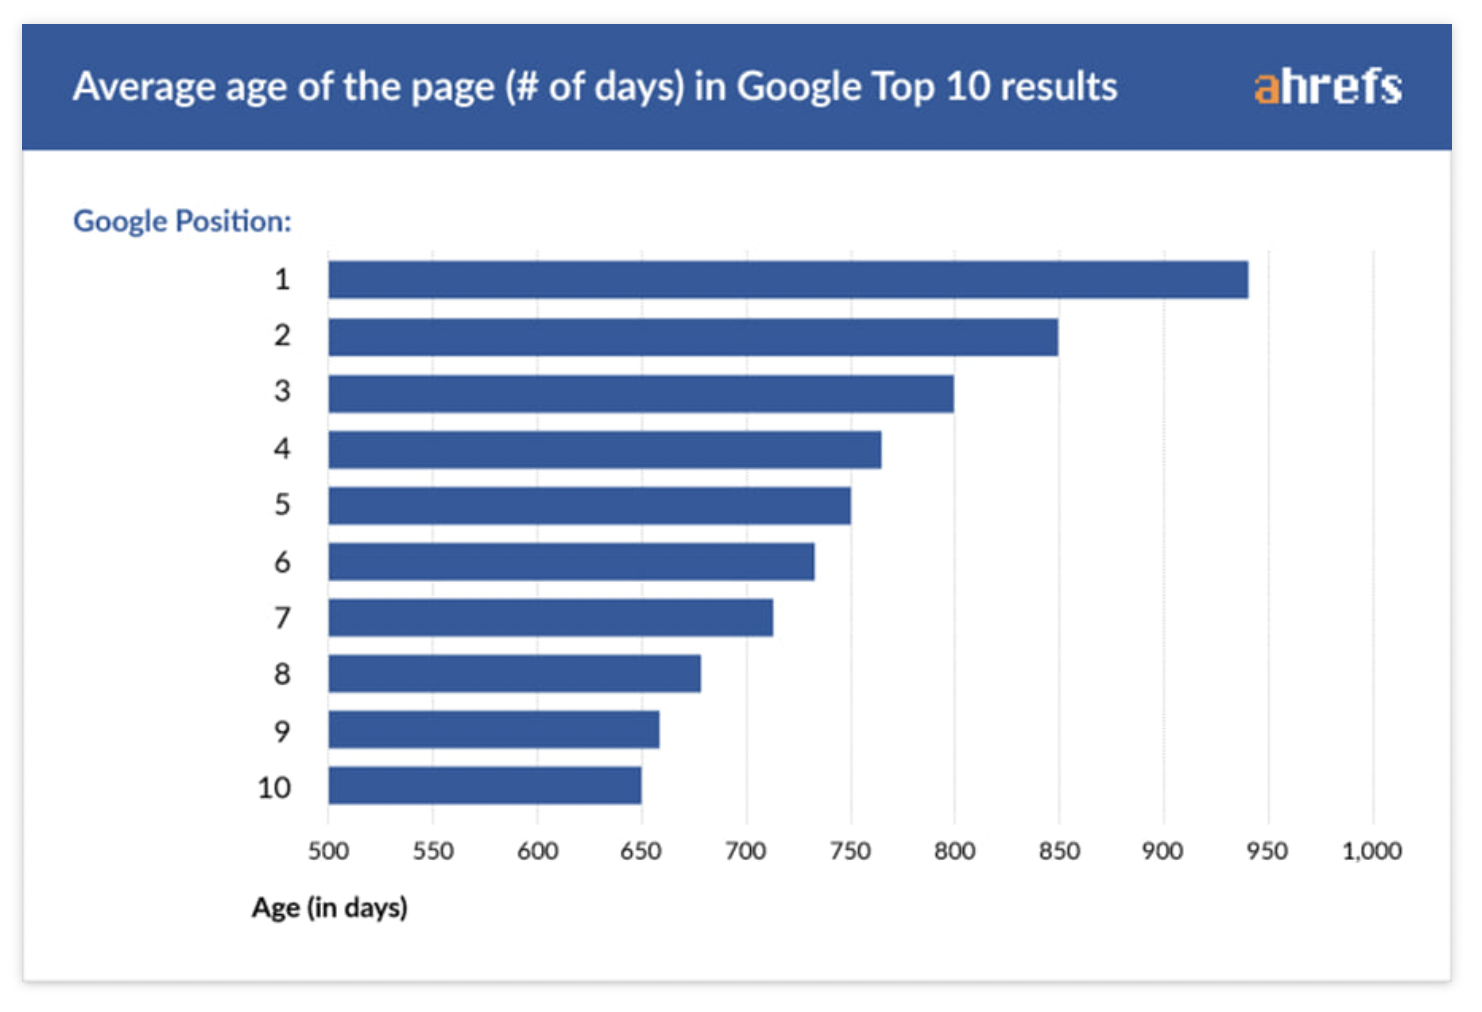 Average age of pages